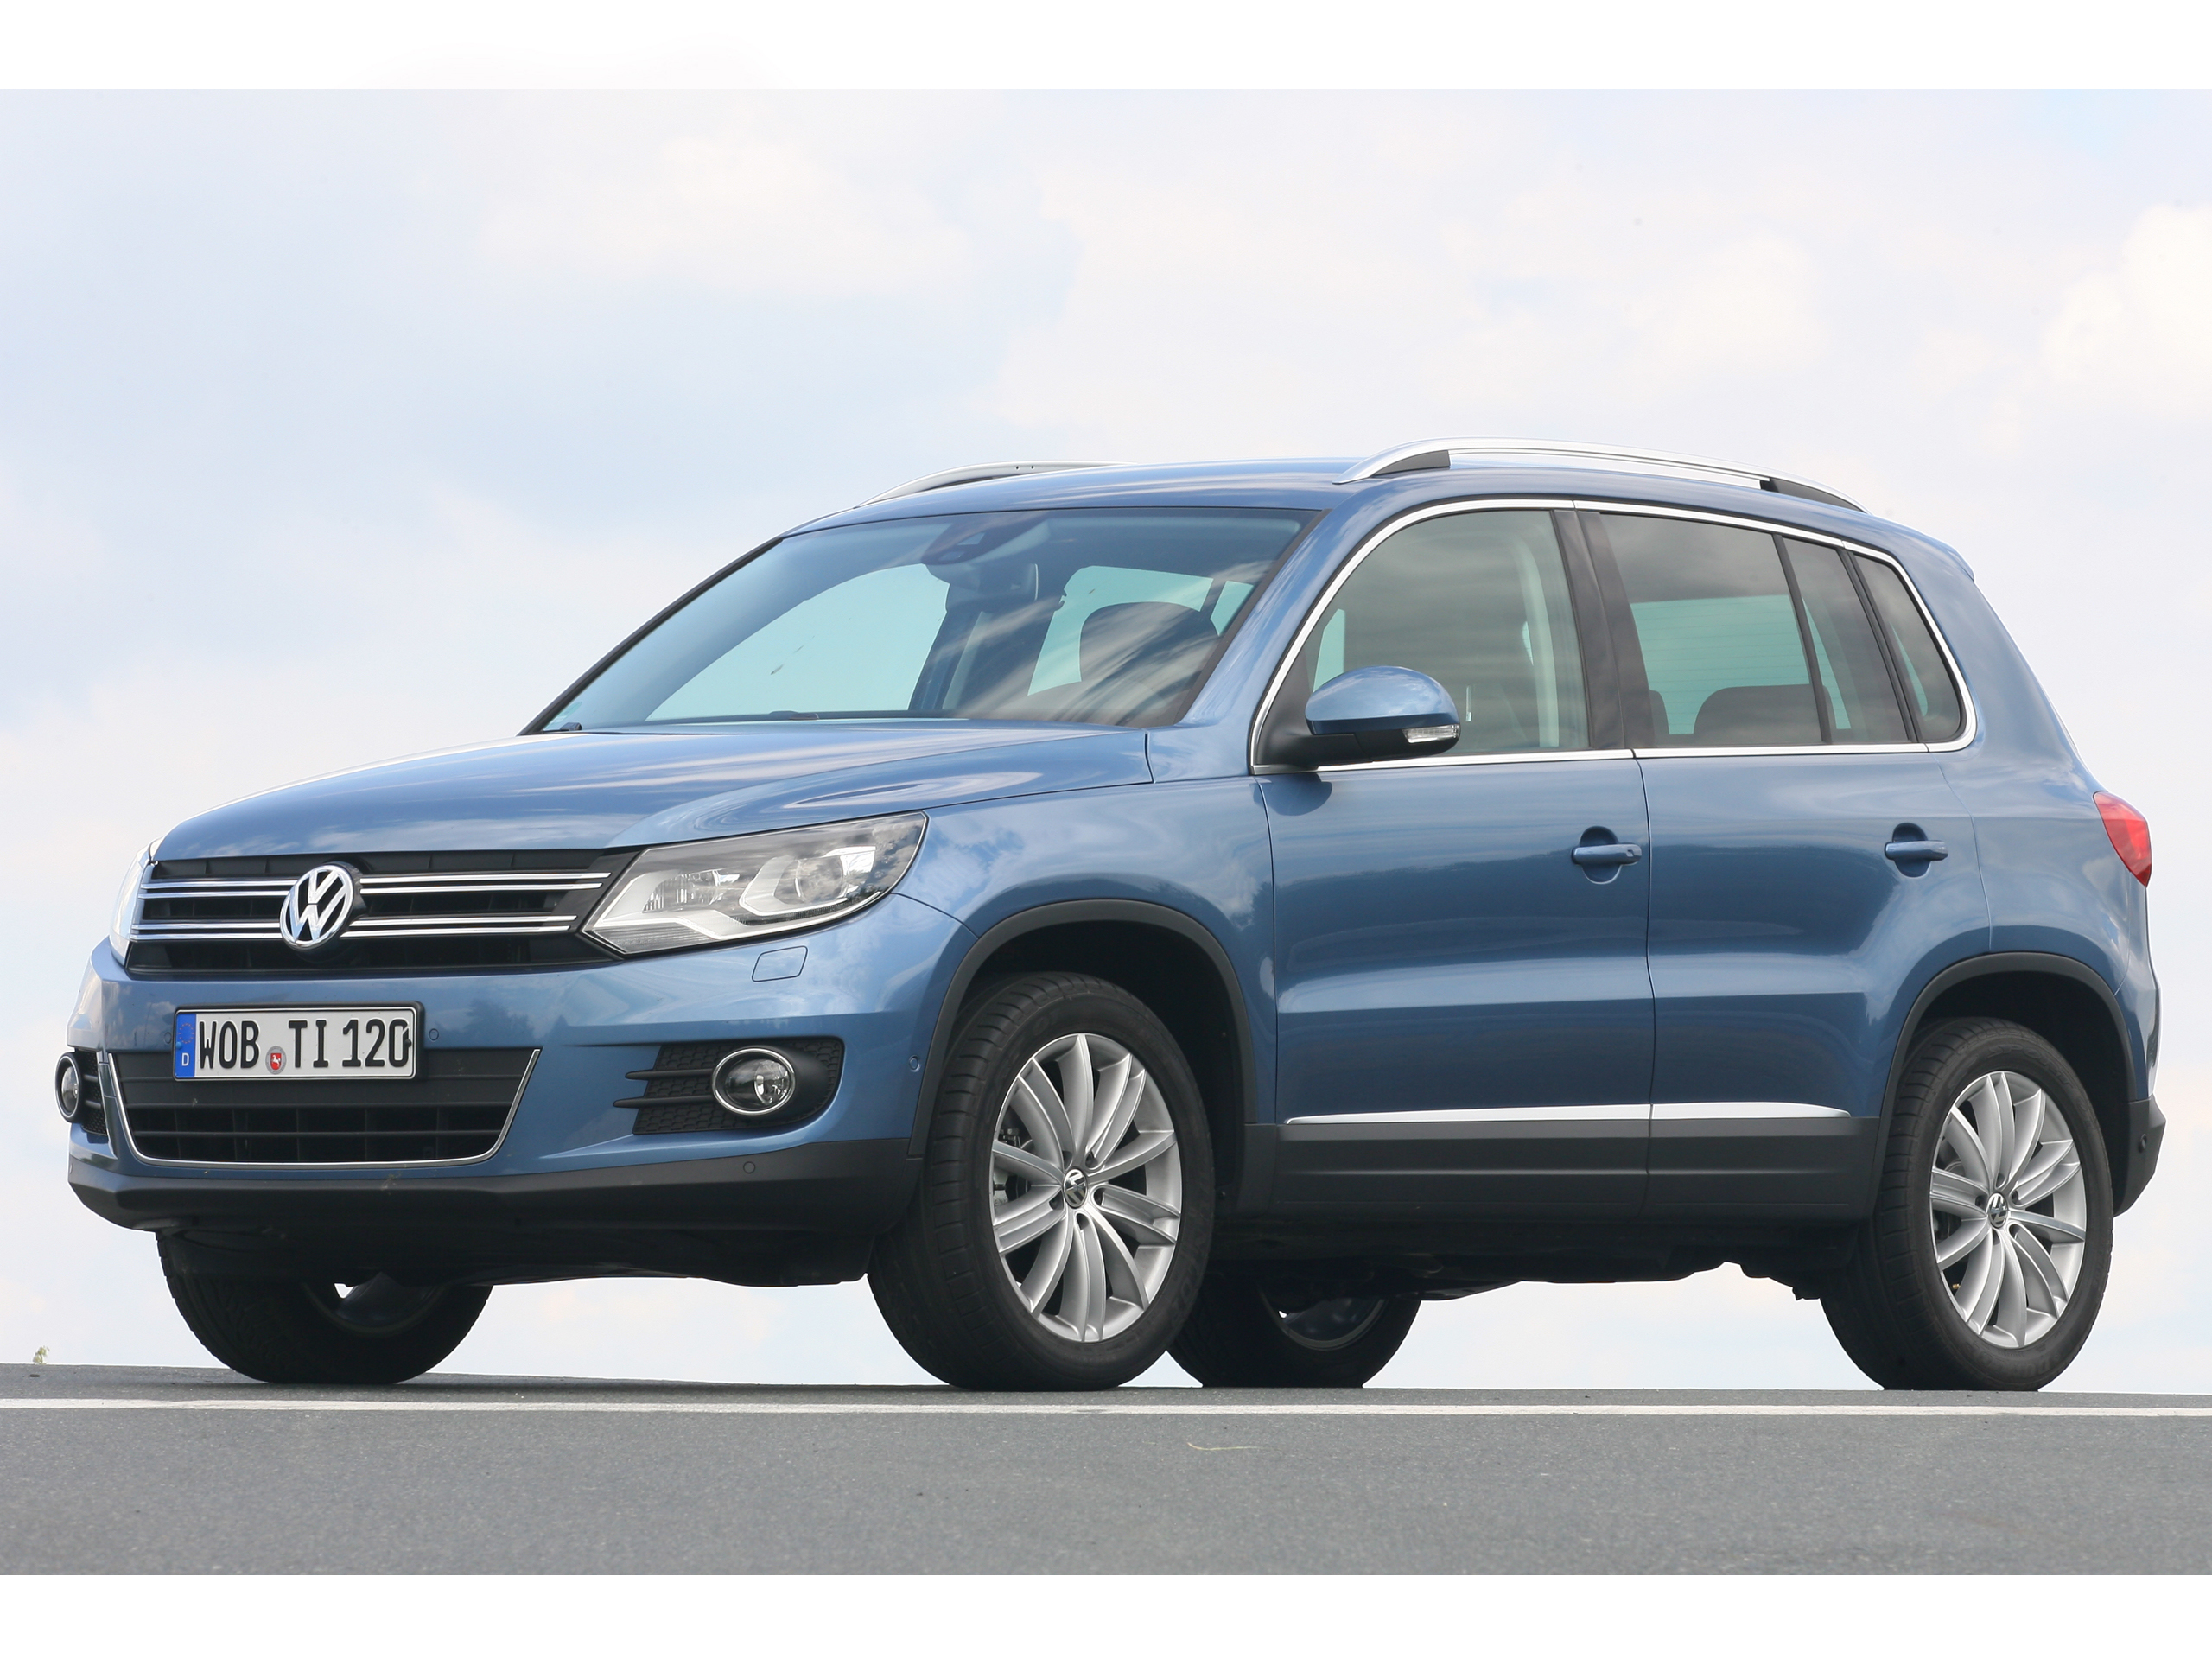 suv vergleich 2012 vw tiguan 2 0 tdi und skoda yeti 2 0. Black Bedroom Furniture Sets. Home Design Ideas